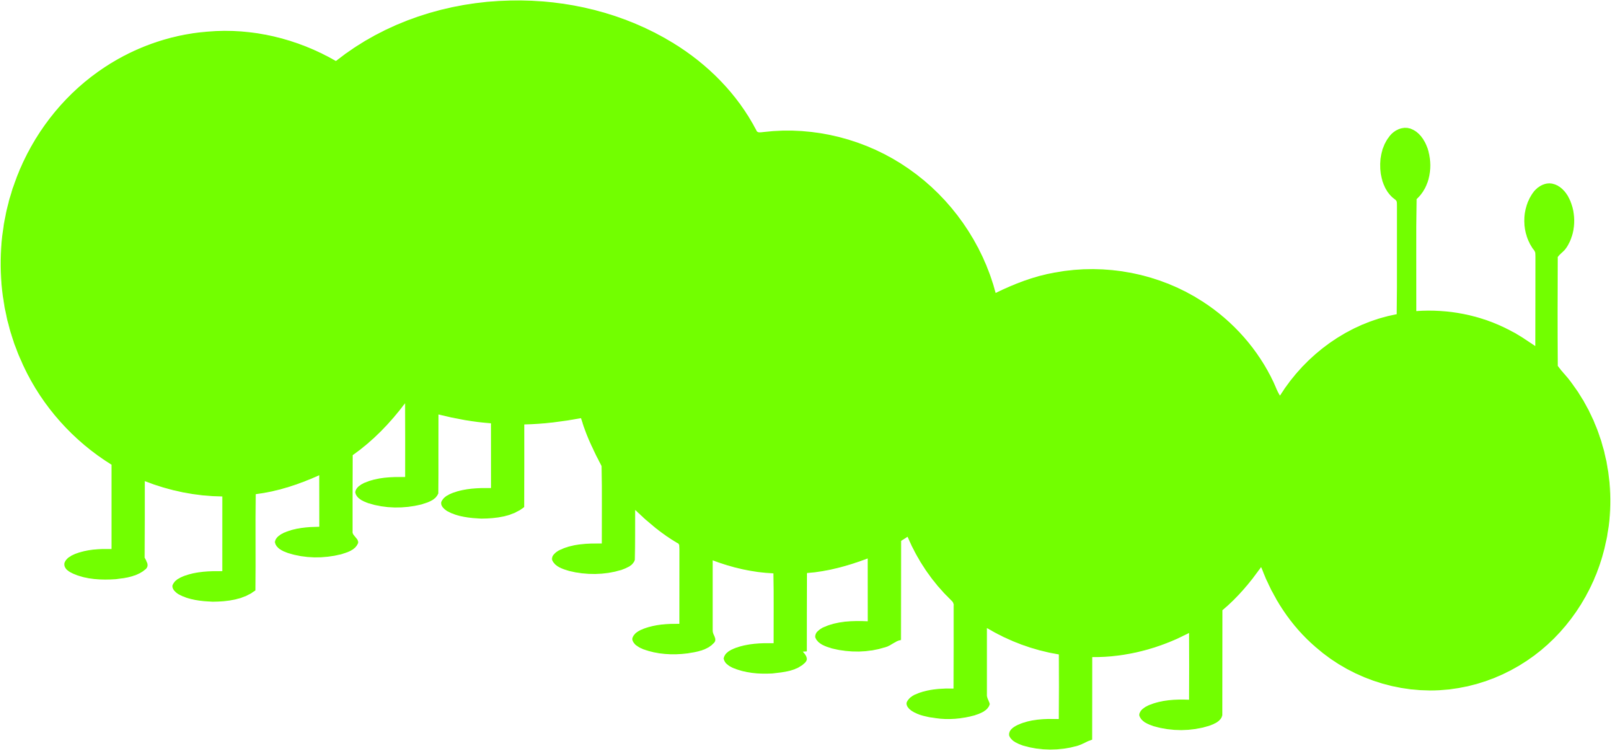 Caterpillar Silhouette Computer Icons Drawing Logo Free Commercial